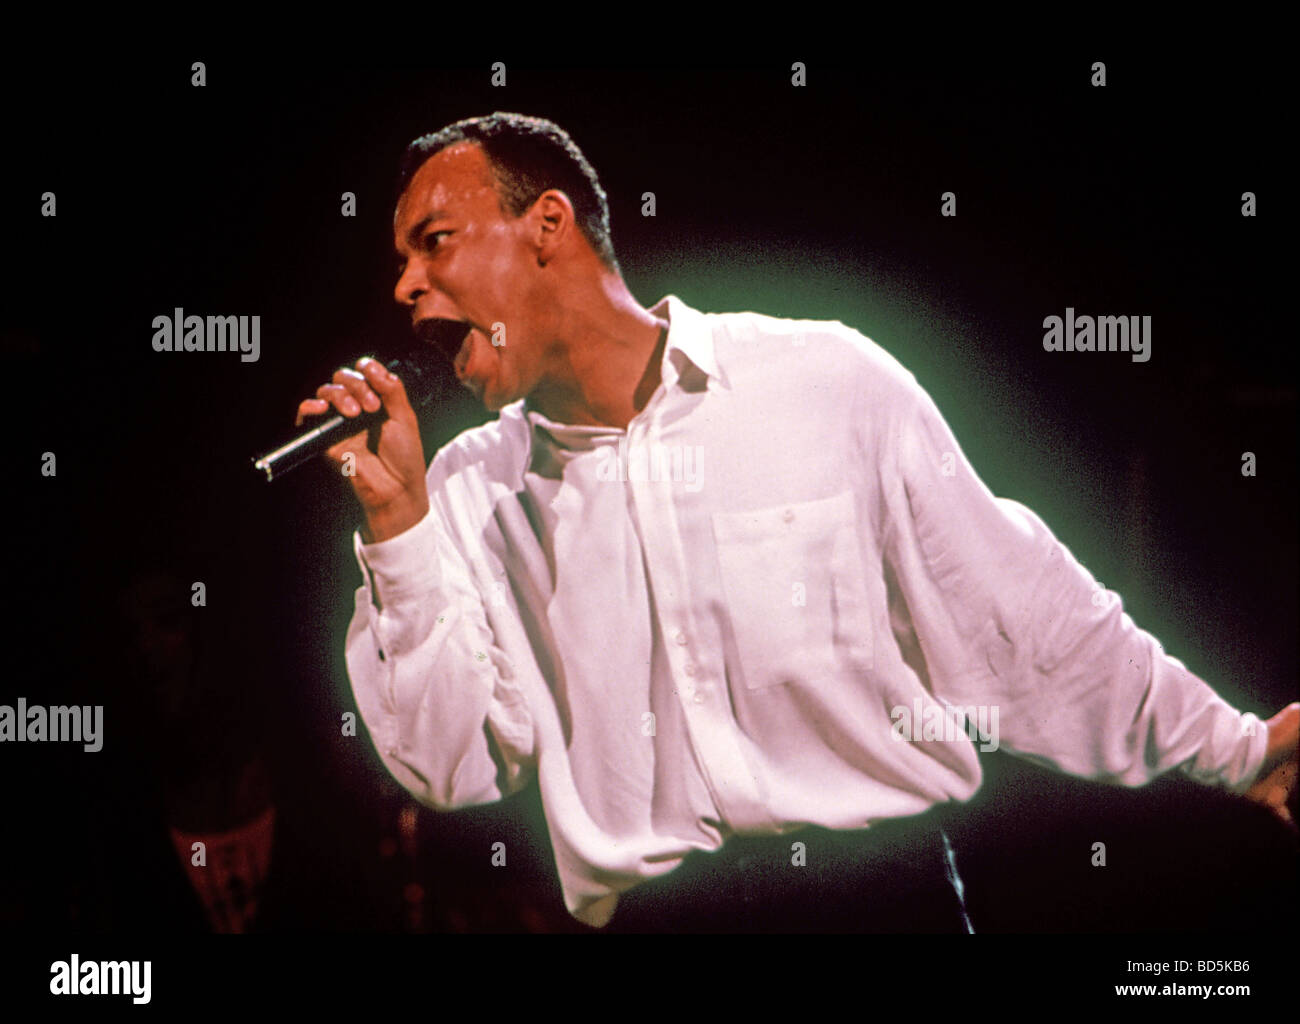 ROLAND GIFT vocalist with the Fine Young Cannibals pop group  about 1989 - Stock Image